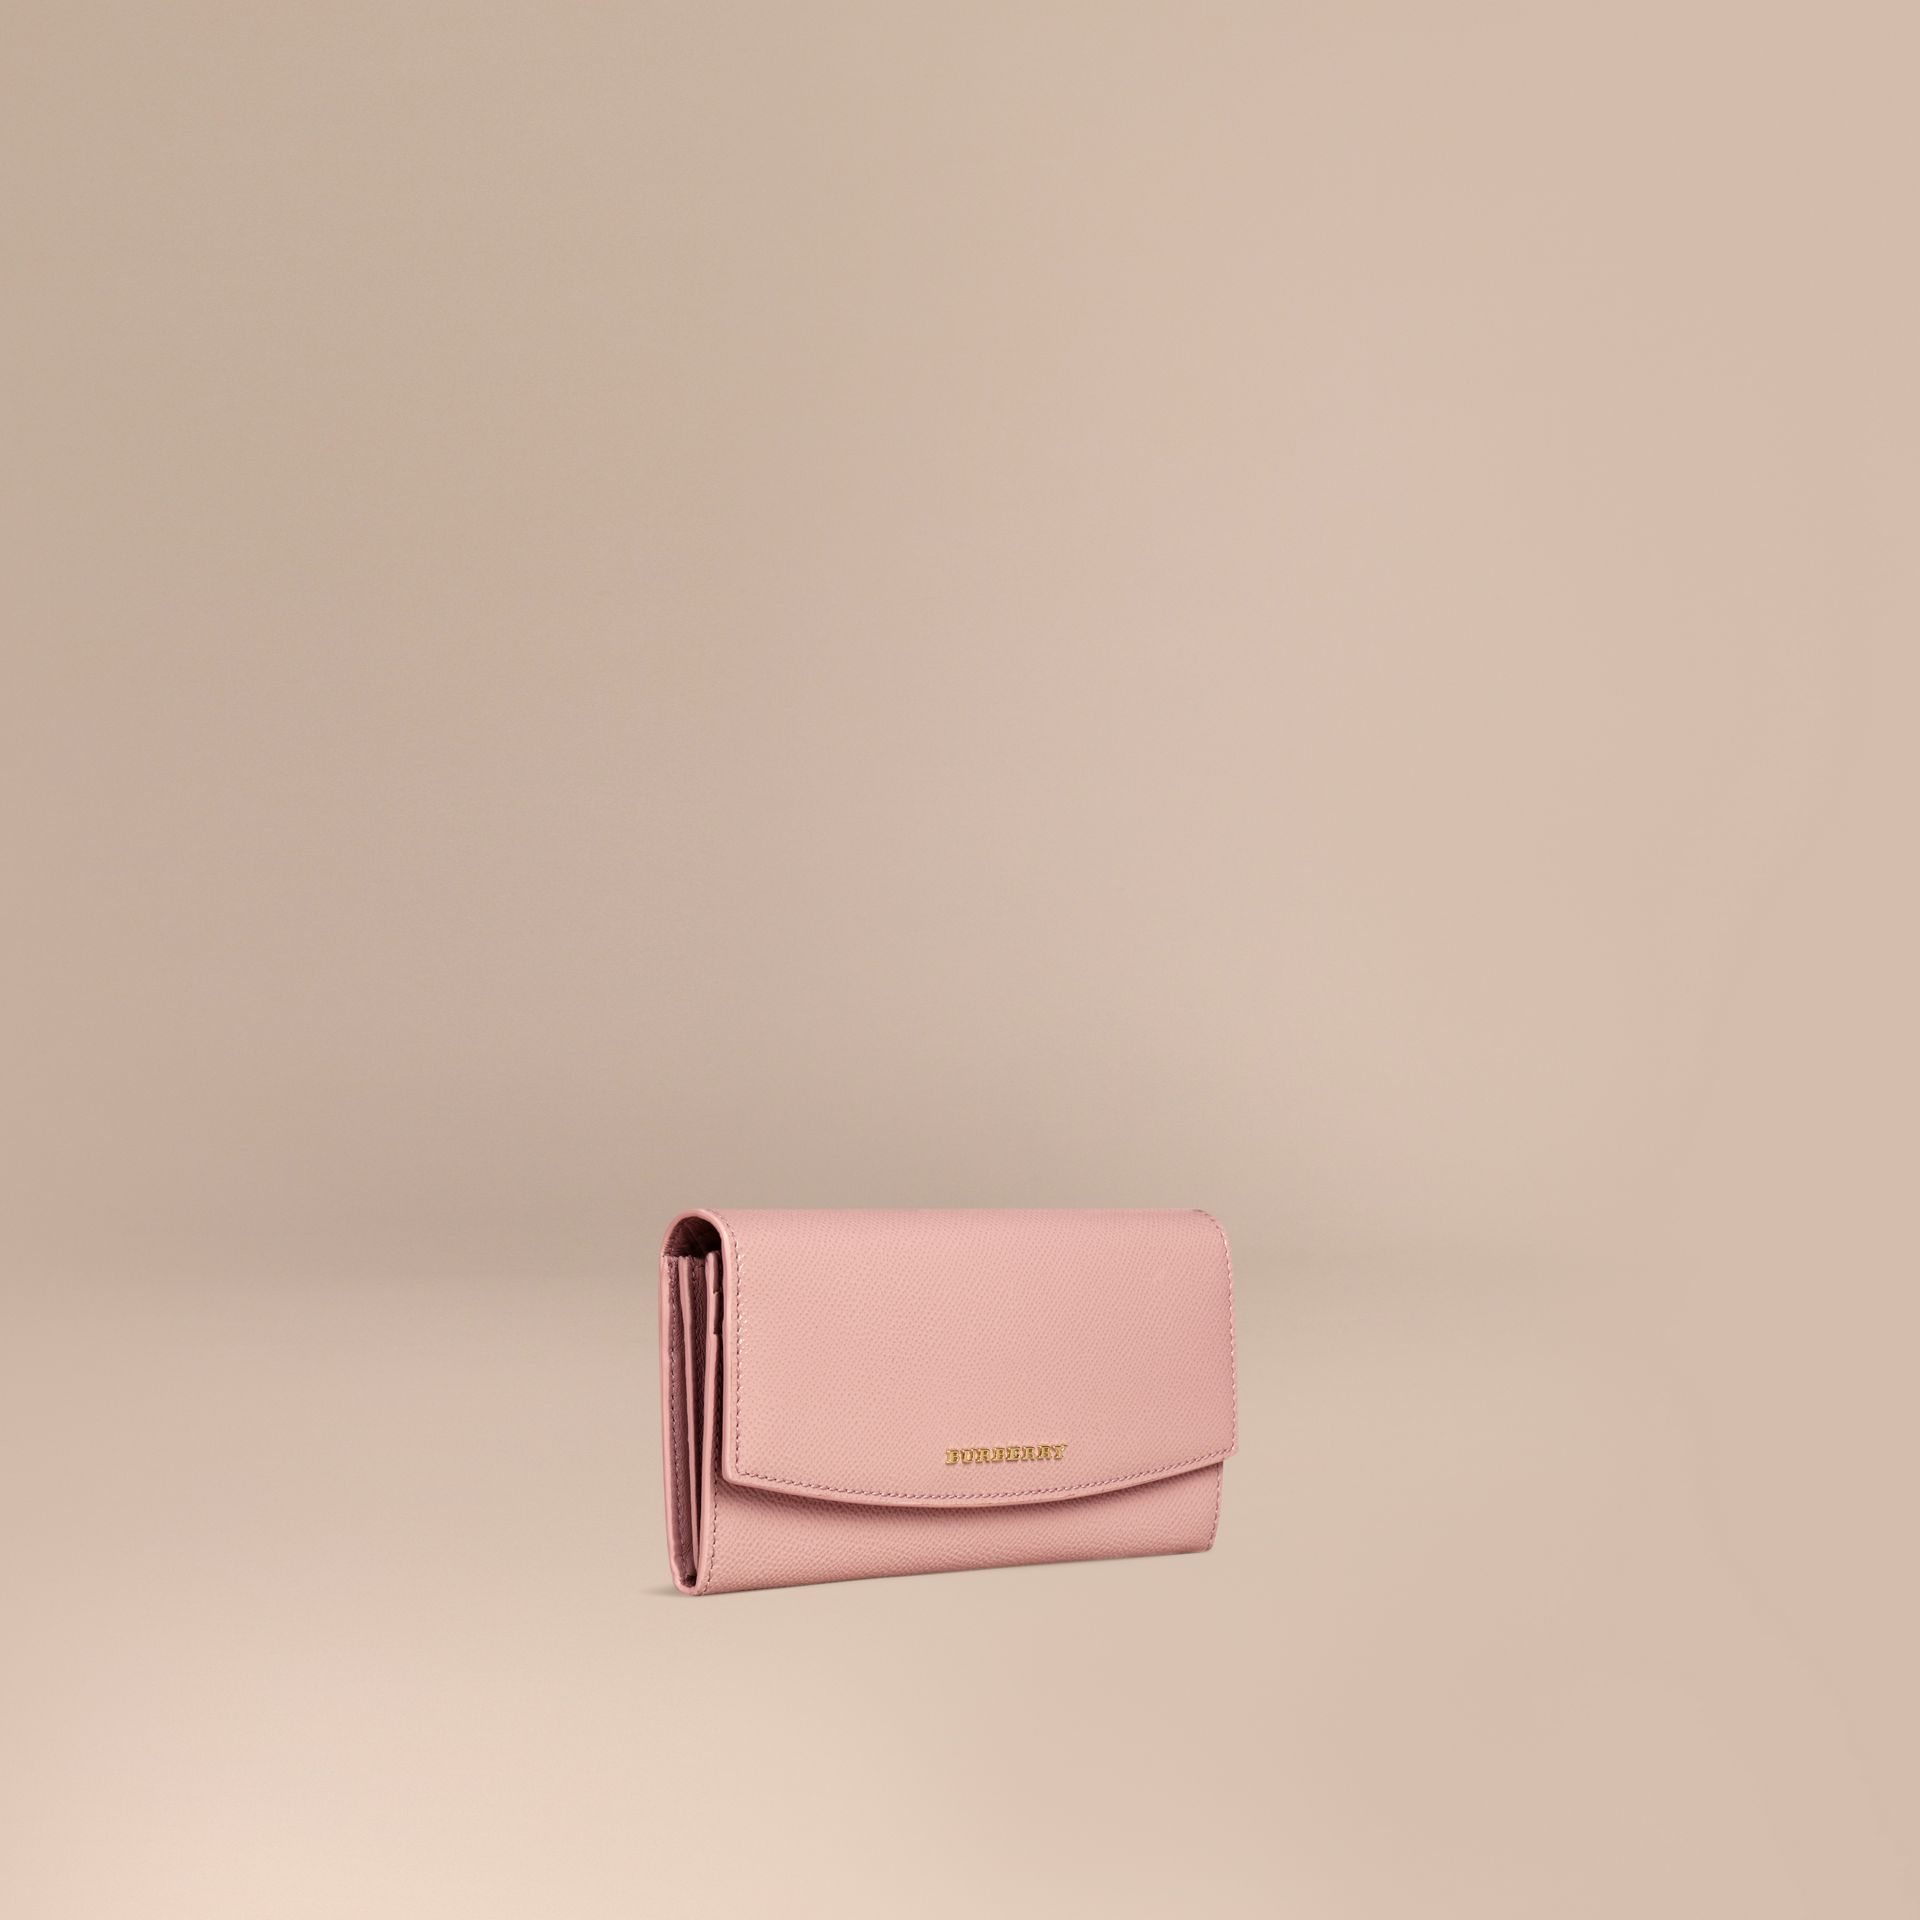 Ash rose Patent London Leather Continental Wallet Ash Rose - gallery image 1